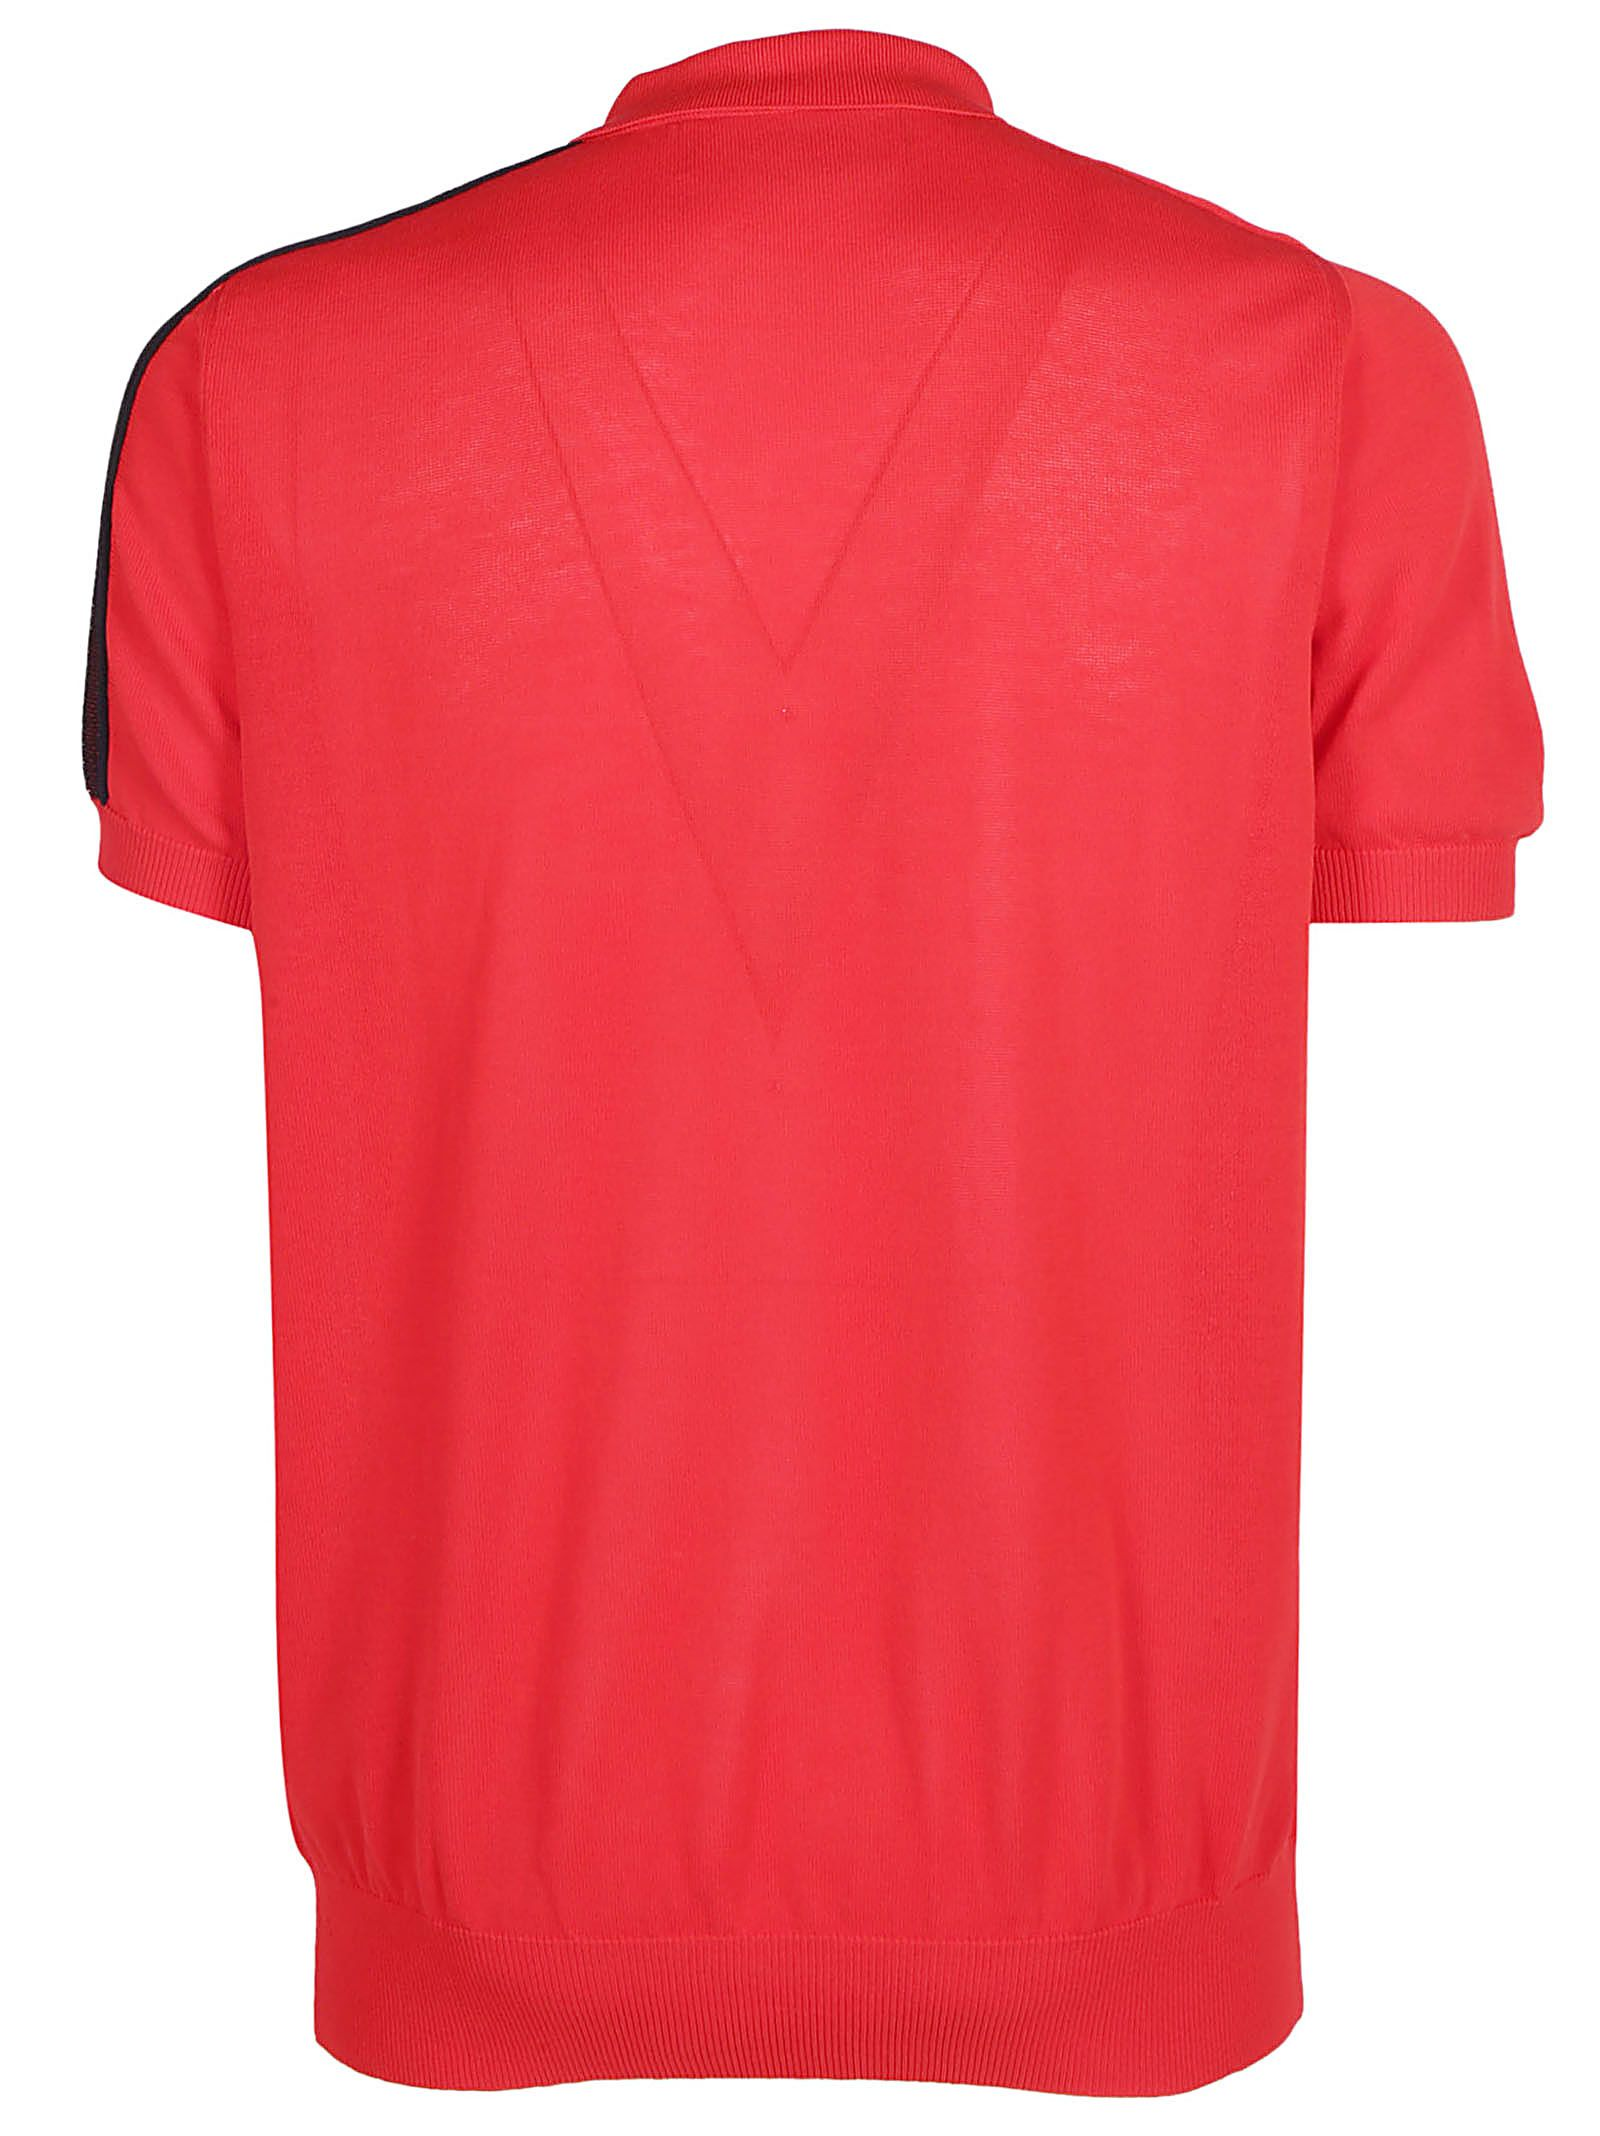 4128d3a6 Dsquared2 Dsquared2 Knit Polo Shirt - Red/black - 10925868 | italist